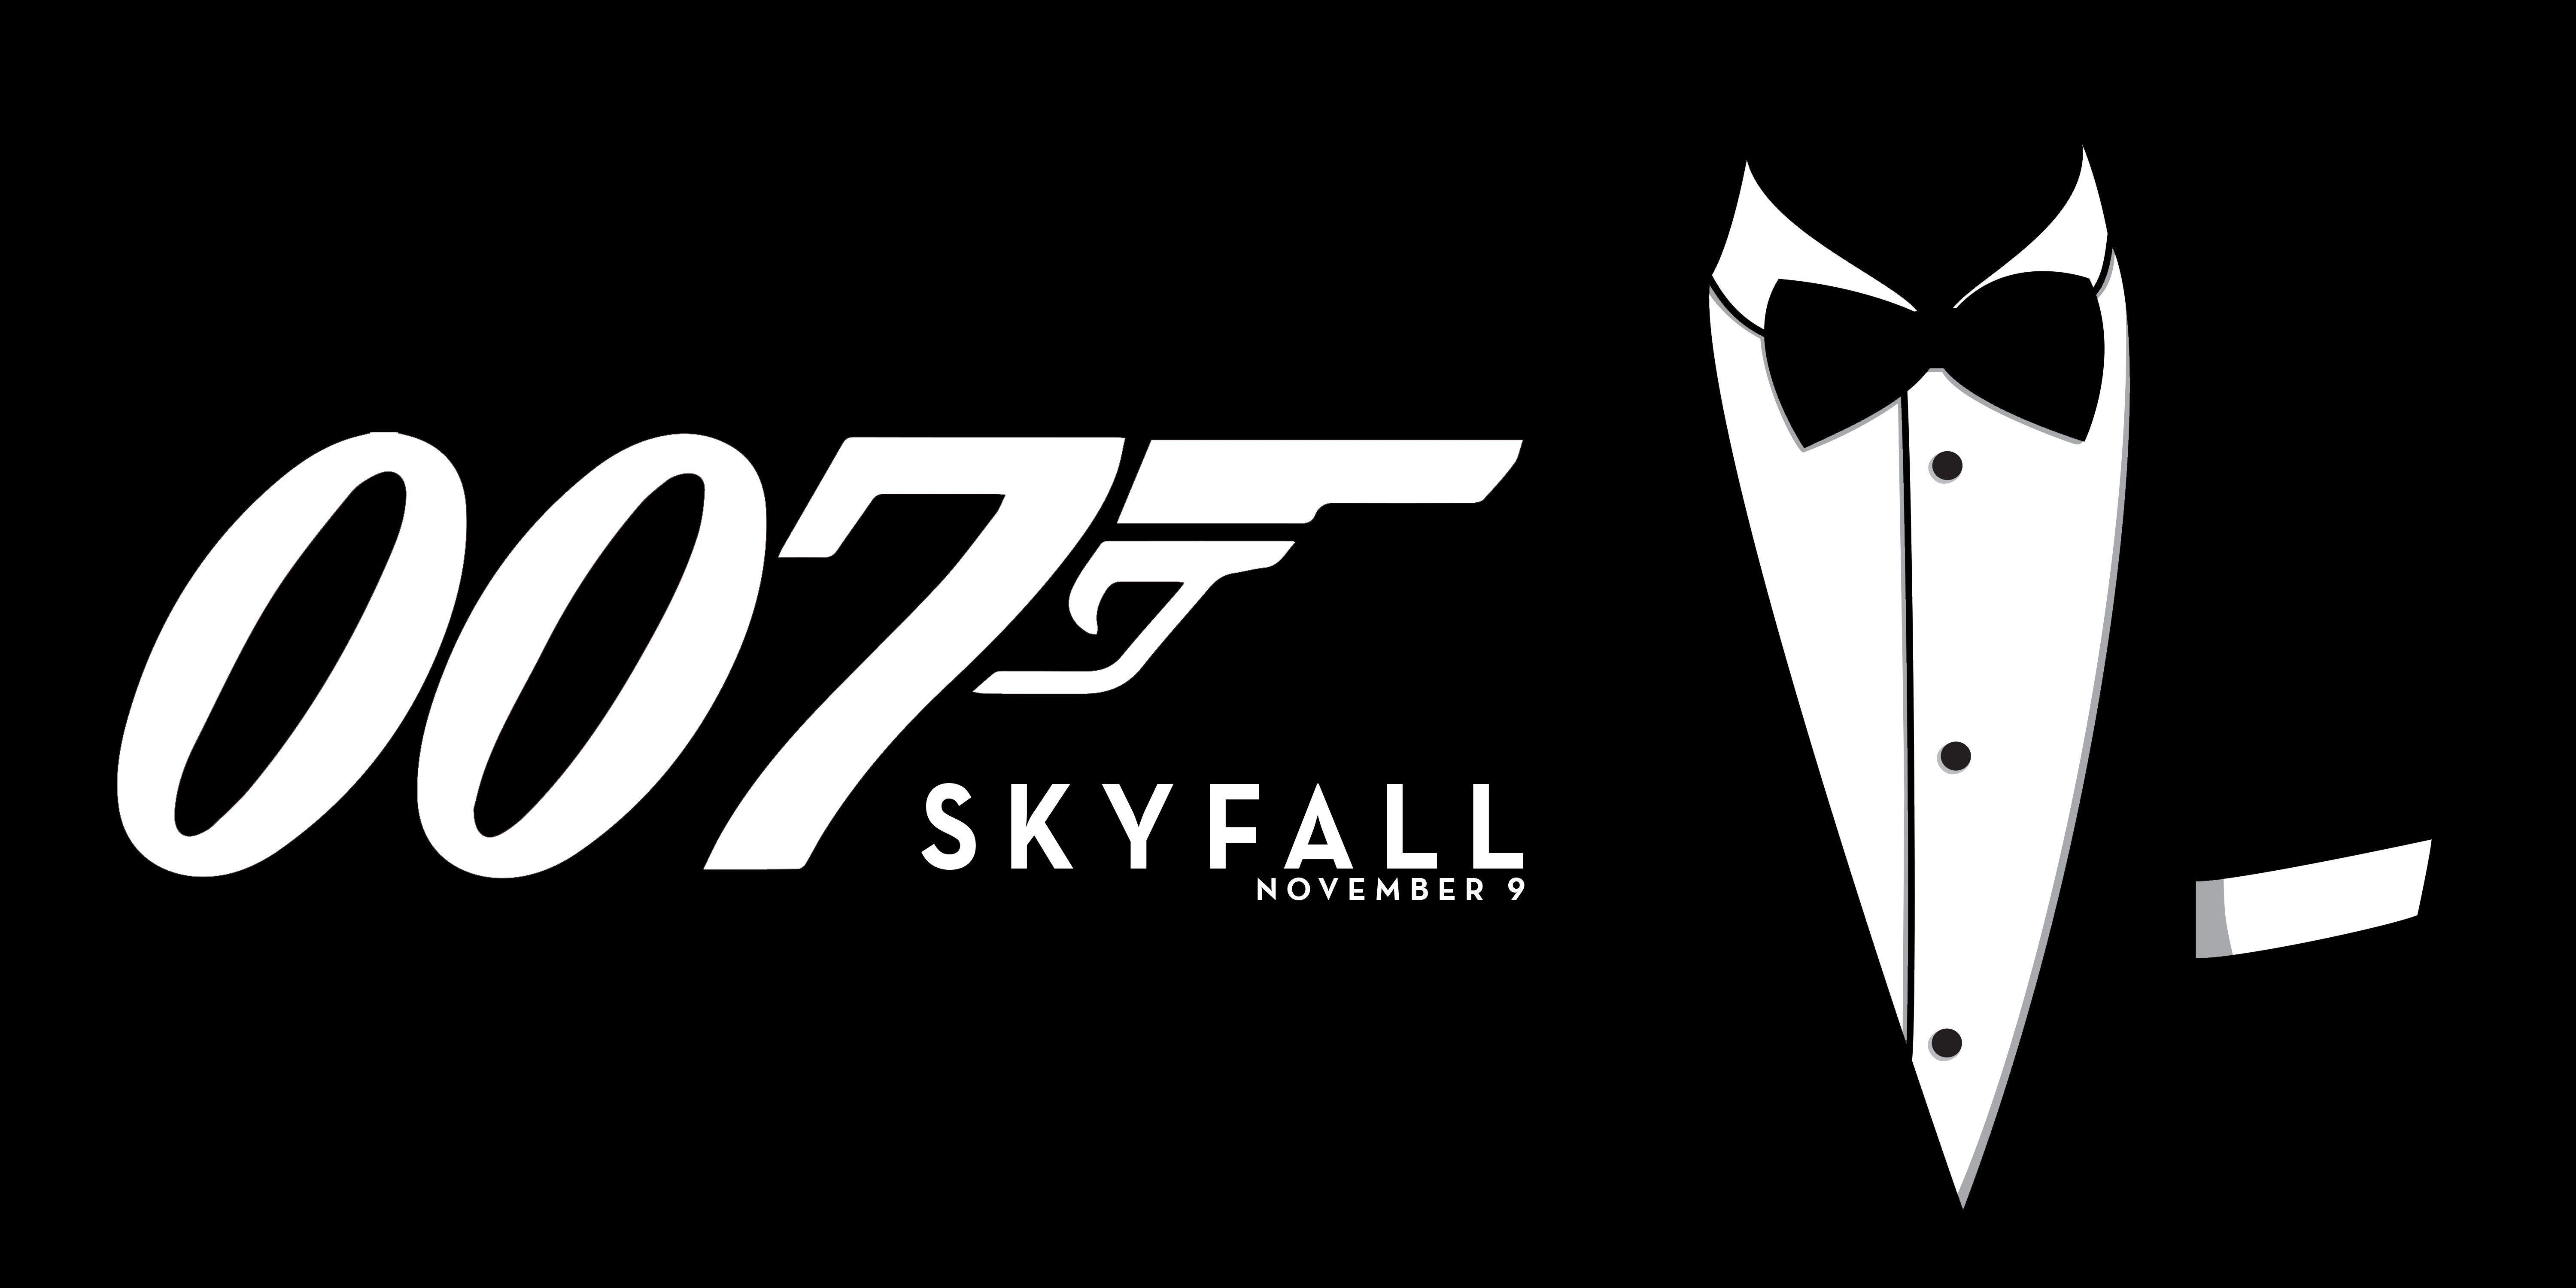 James Bond Skyfall Logo Wallpapers